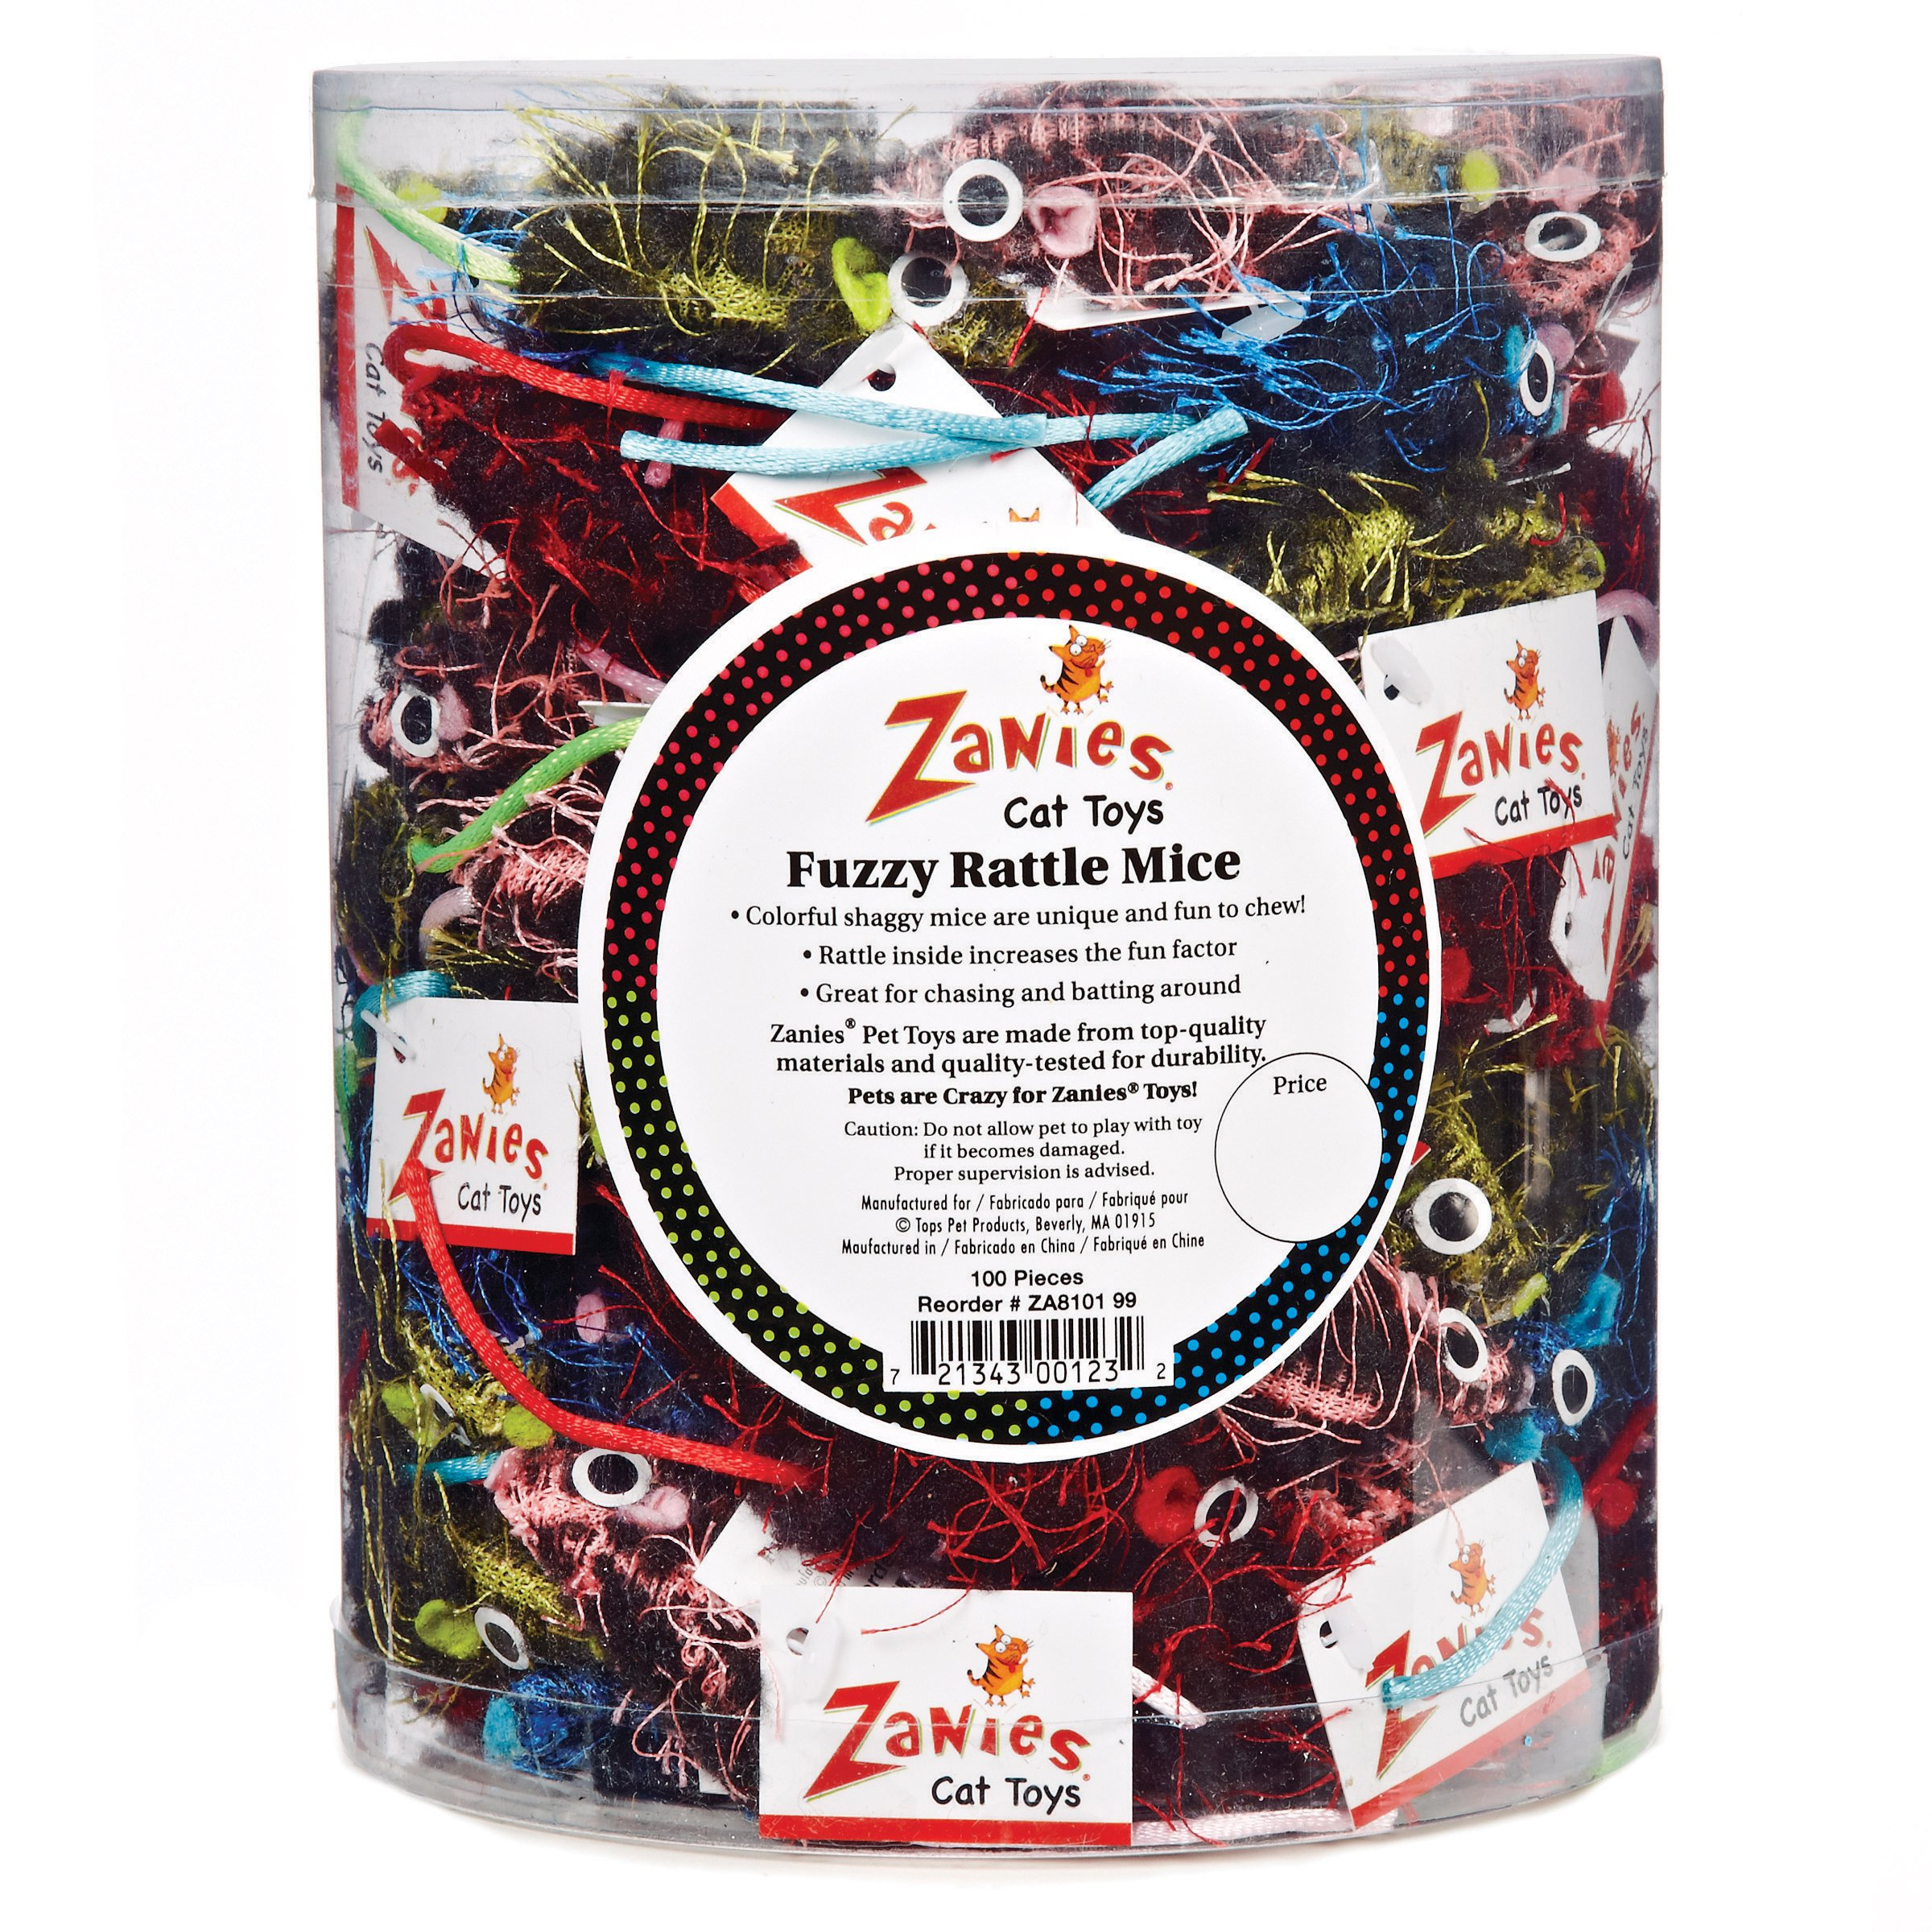 Zanies Fuzzy Rattle Mice Canister